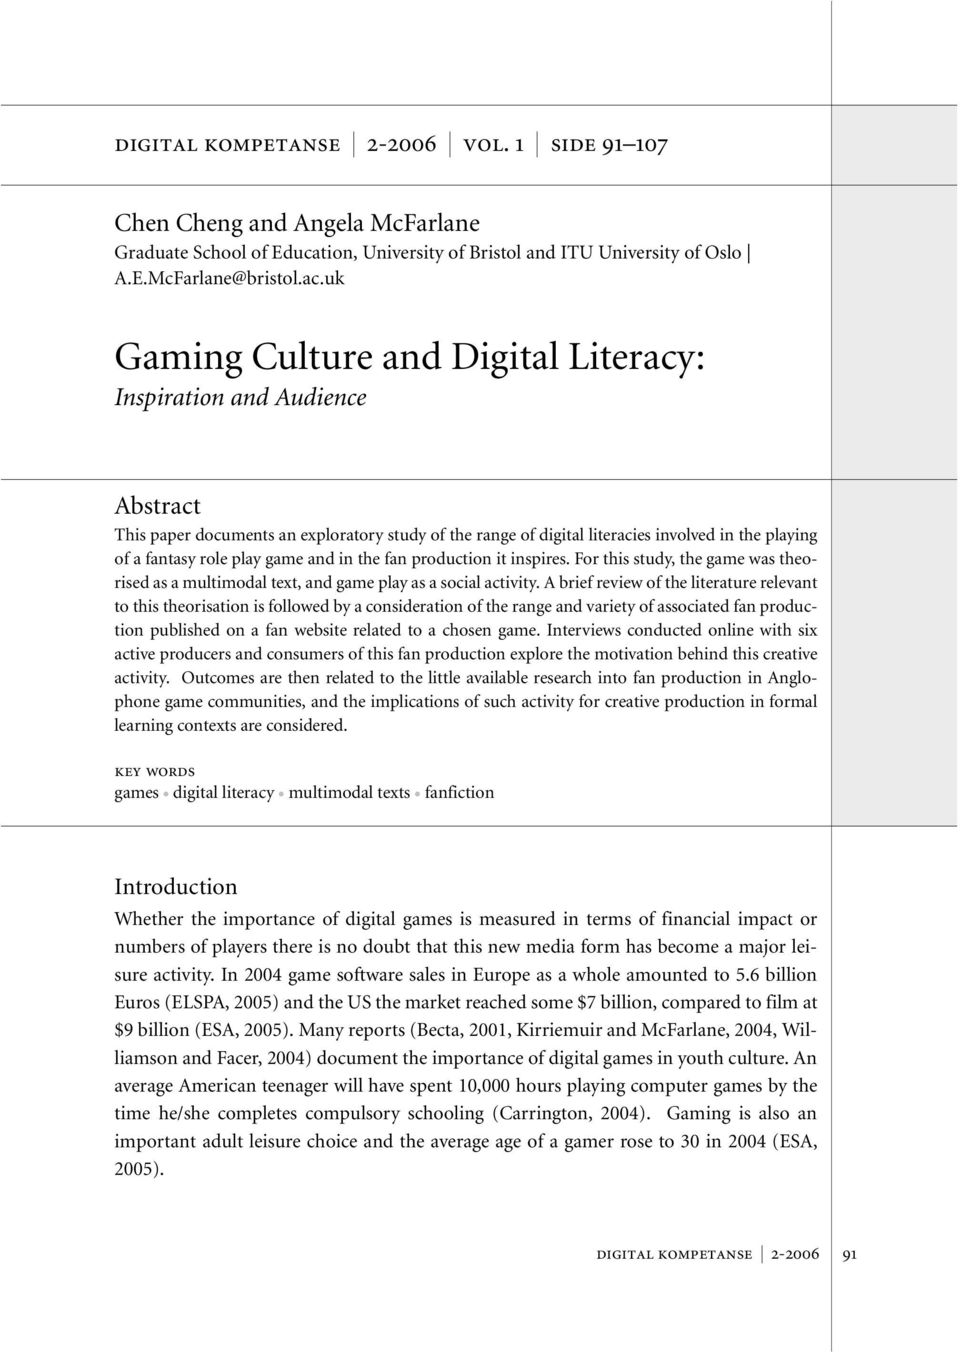 game and in the fan production it inspires. For this study, the game was theorised as a multimodal text, and game play as a social activity.